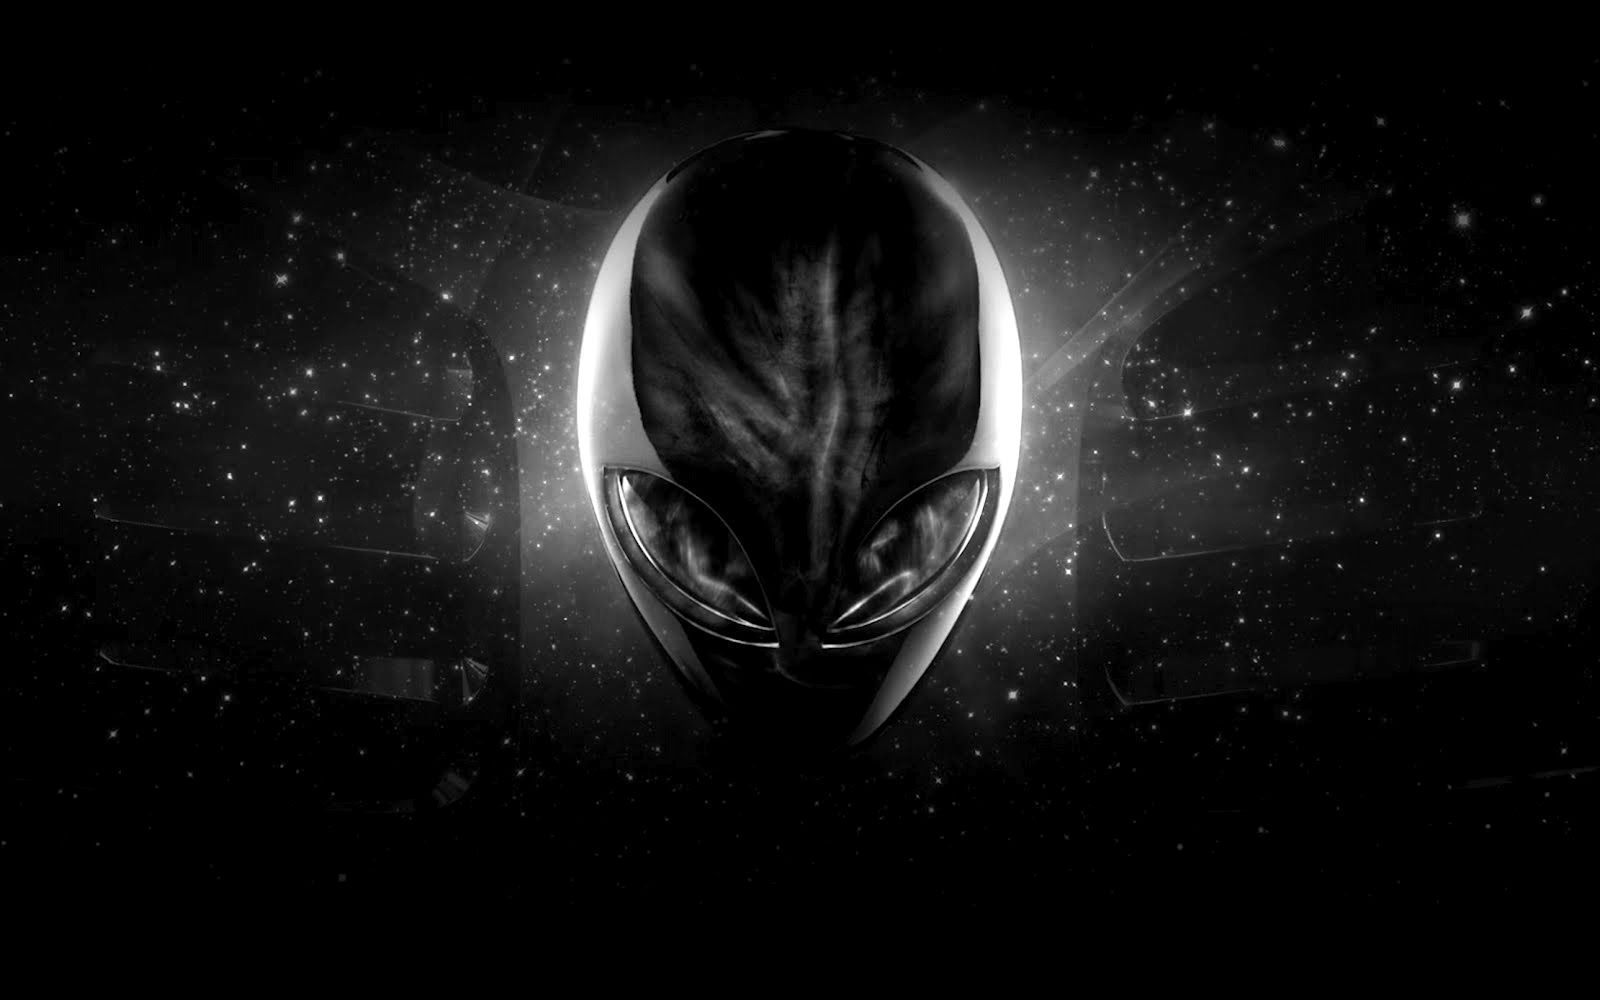 Alien Head HD Desktop Wallpaper High Definition Fullscreen 1600x1000 Wallpapers 38